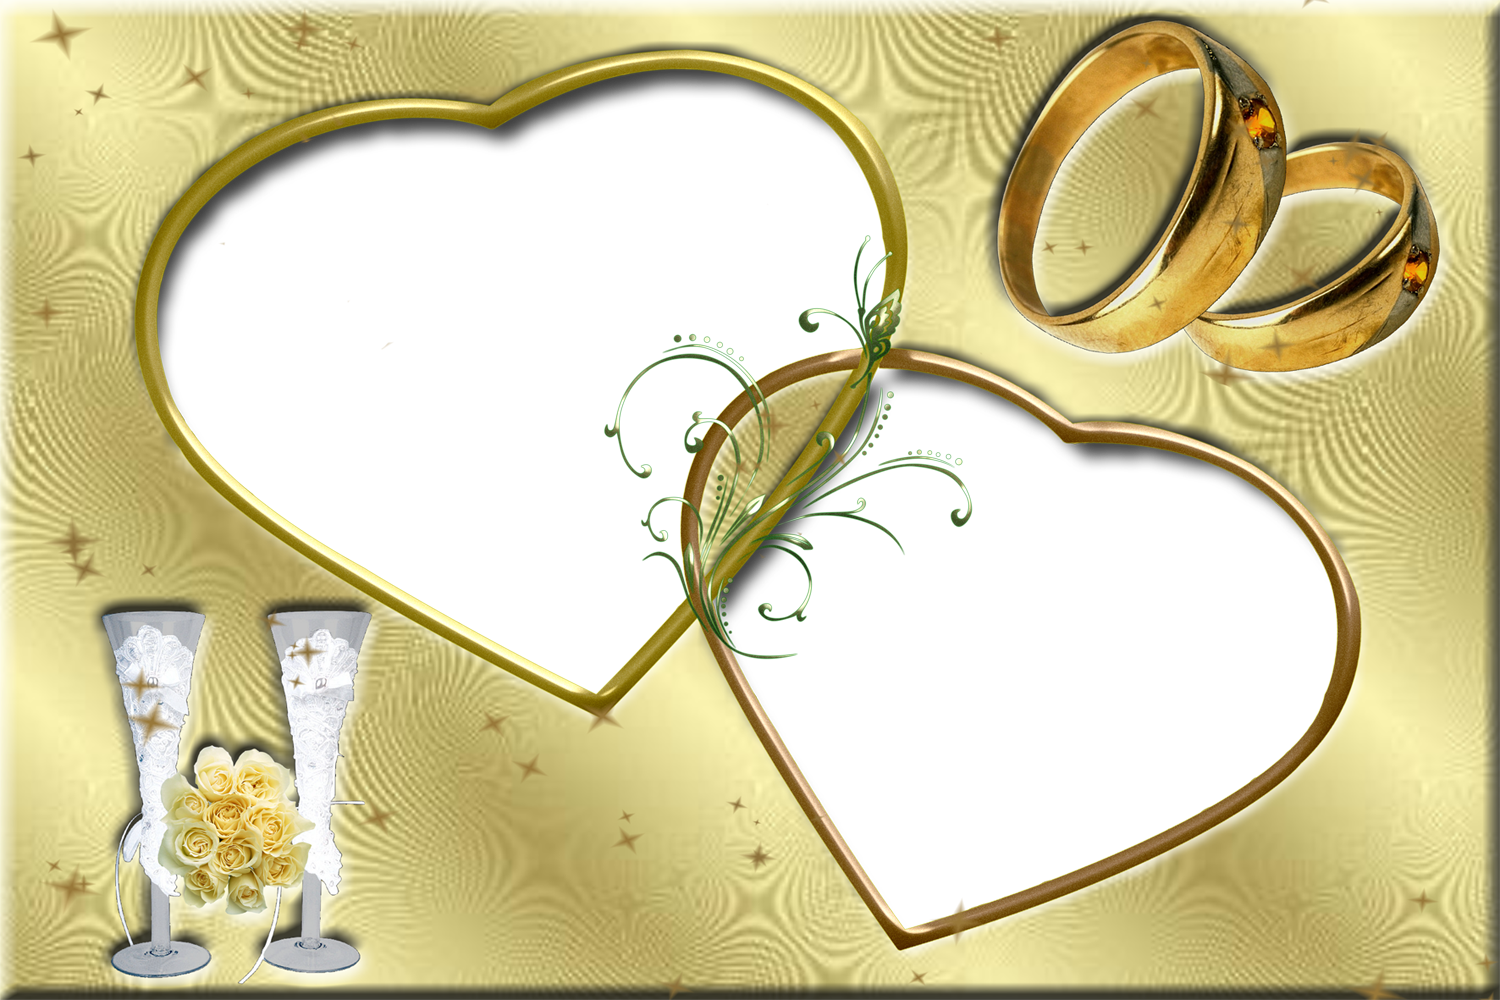 http://1.bp.blogspot.com/-DwbbnfuBCJ8/UA_m95LRK1I/AAAAAAAAKOg/yiQ1xDfDEpo/s1600/Frame-Gold+Love-Photo-Frames+Beautiful+MarriageFrames+karishma+%252B+album+%252B+frames+%252Bphotos+%252B+background+%252B+new+marriage+frames+karishma+frames+-+background+-album+-+sekar+-+photo+shop+-+marriage+album+frames+2.png